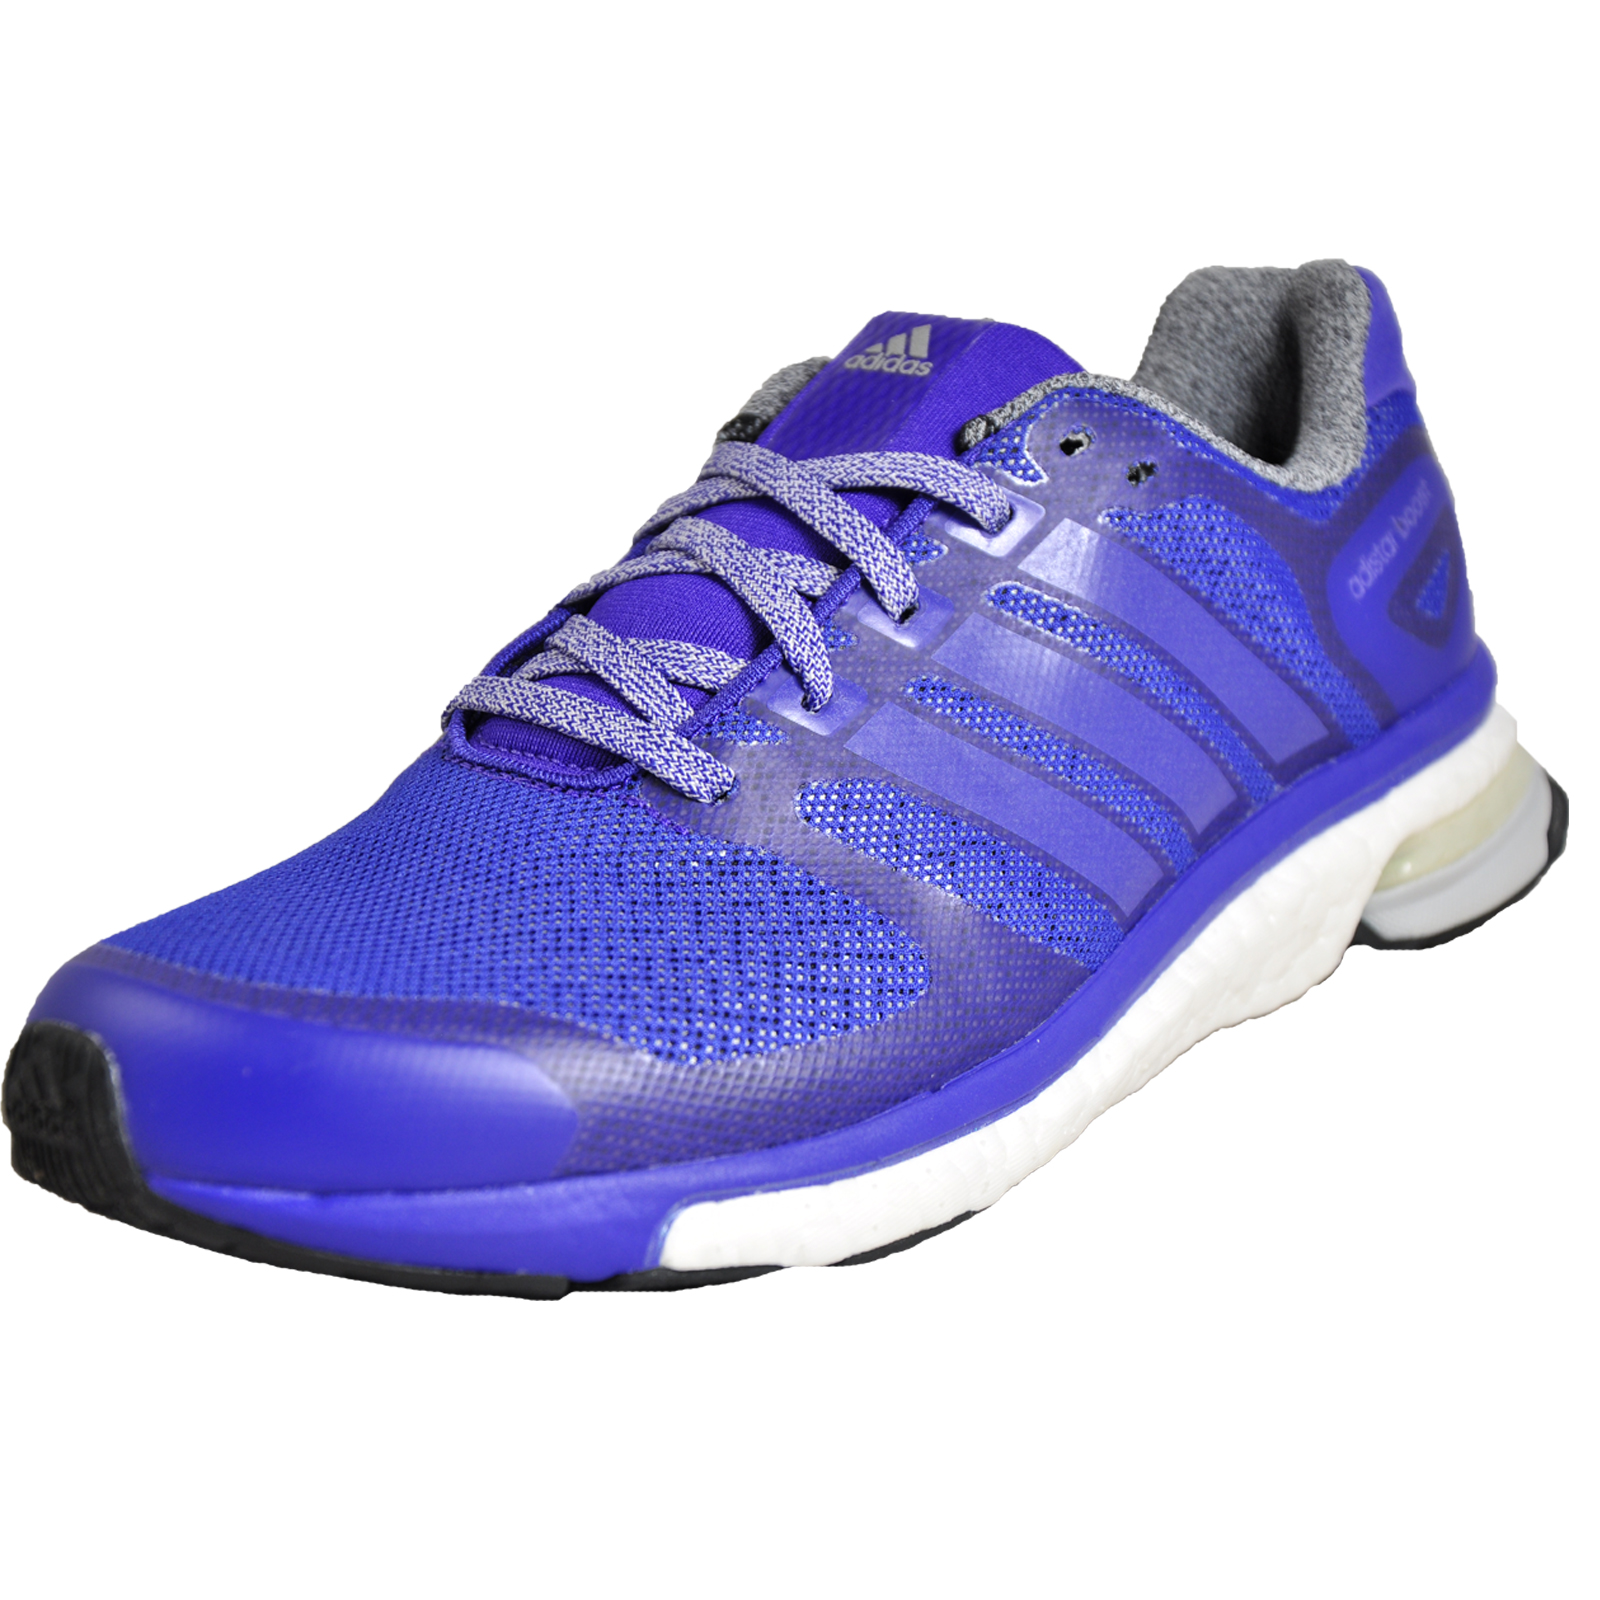 check out a6bc1 ae530 Details about Adidas Adistar Boost Women s Premium Running Shoes Fitness  Gym Trainers